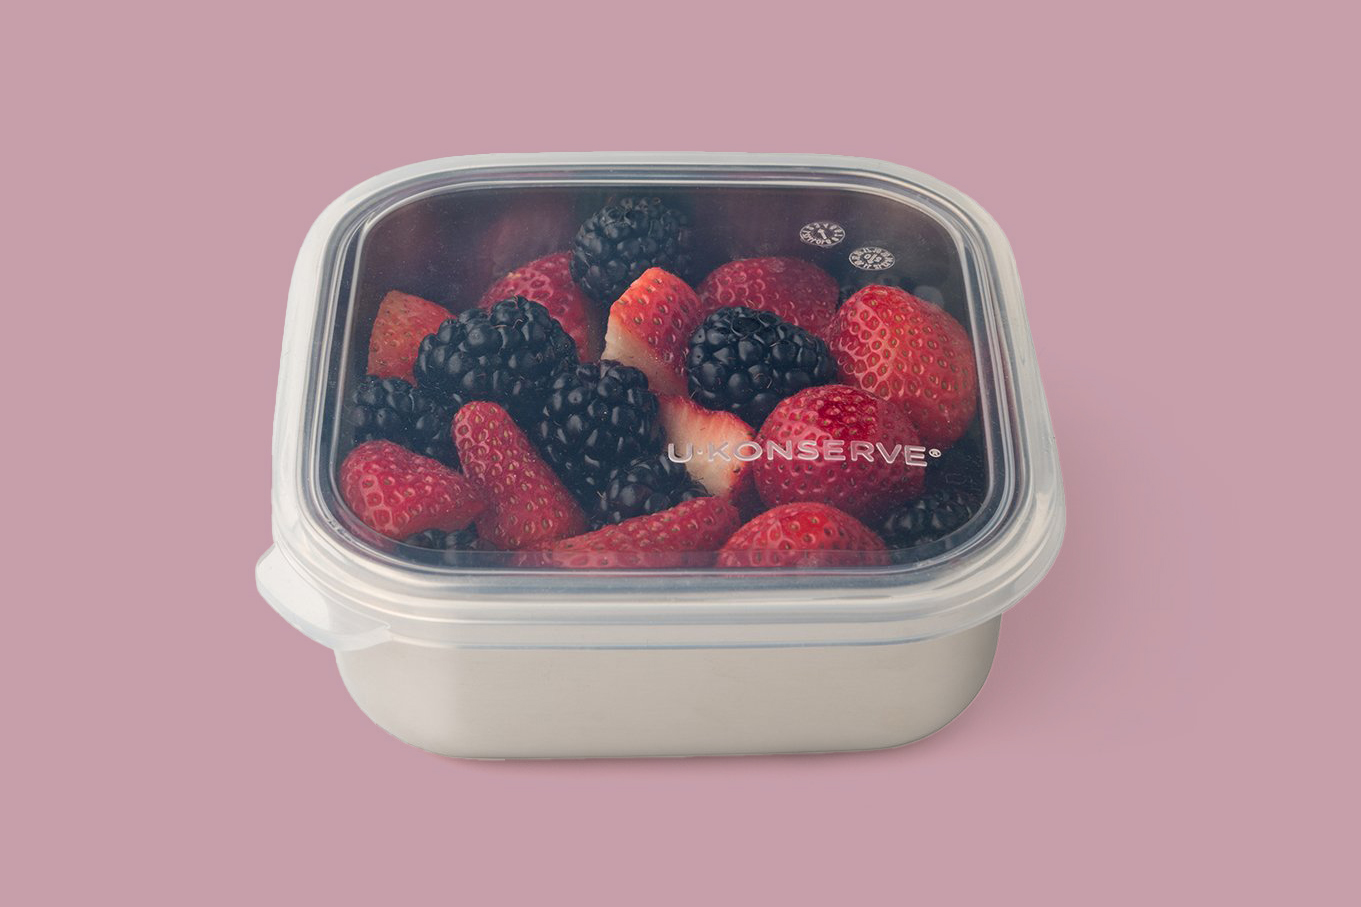 U-Konserve Stainless Steel Containers